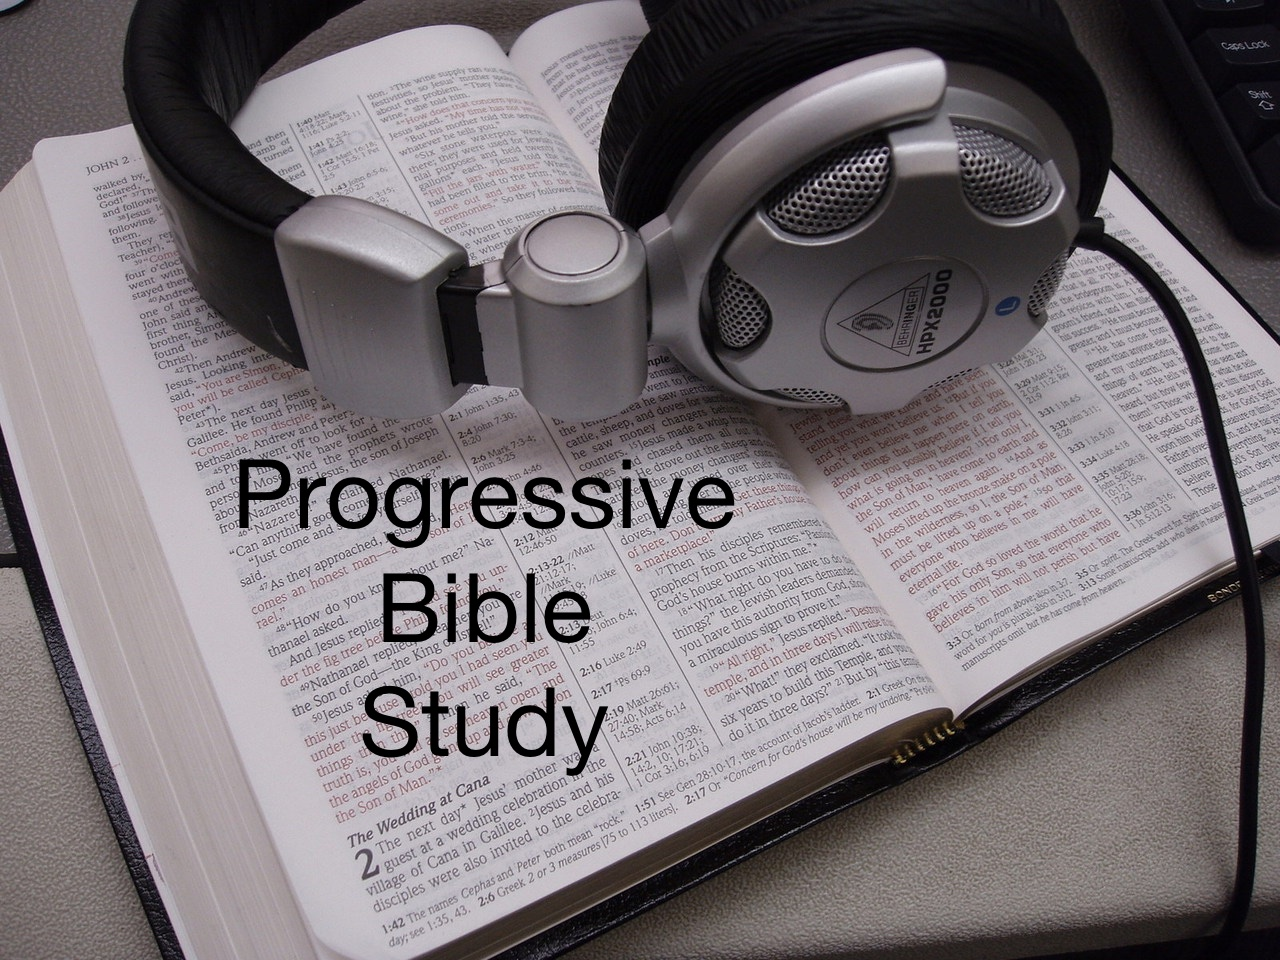 Progressive Bible Study (Sept 6)